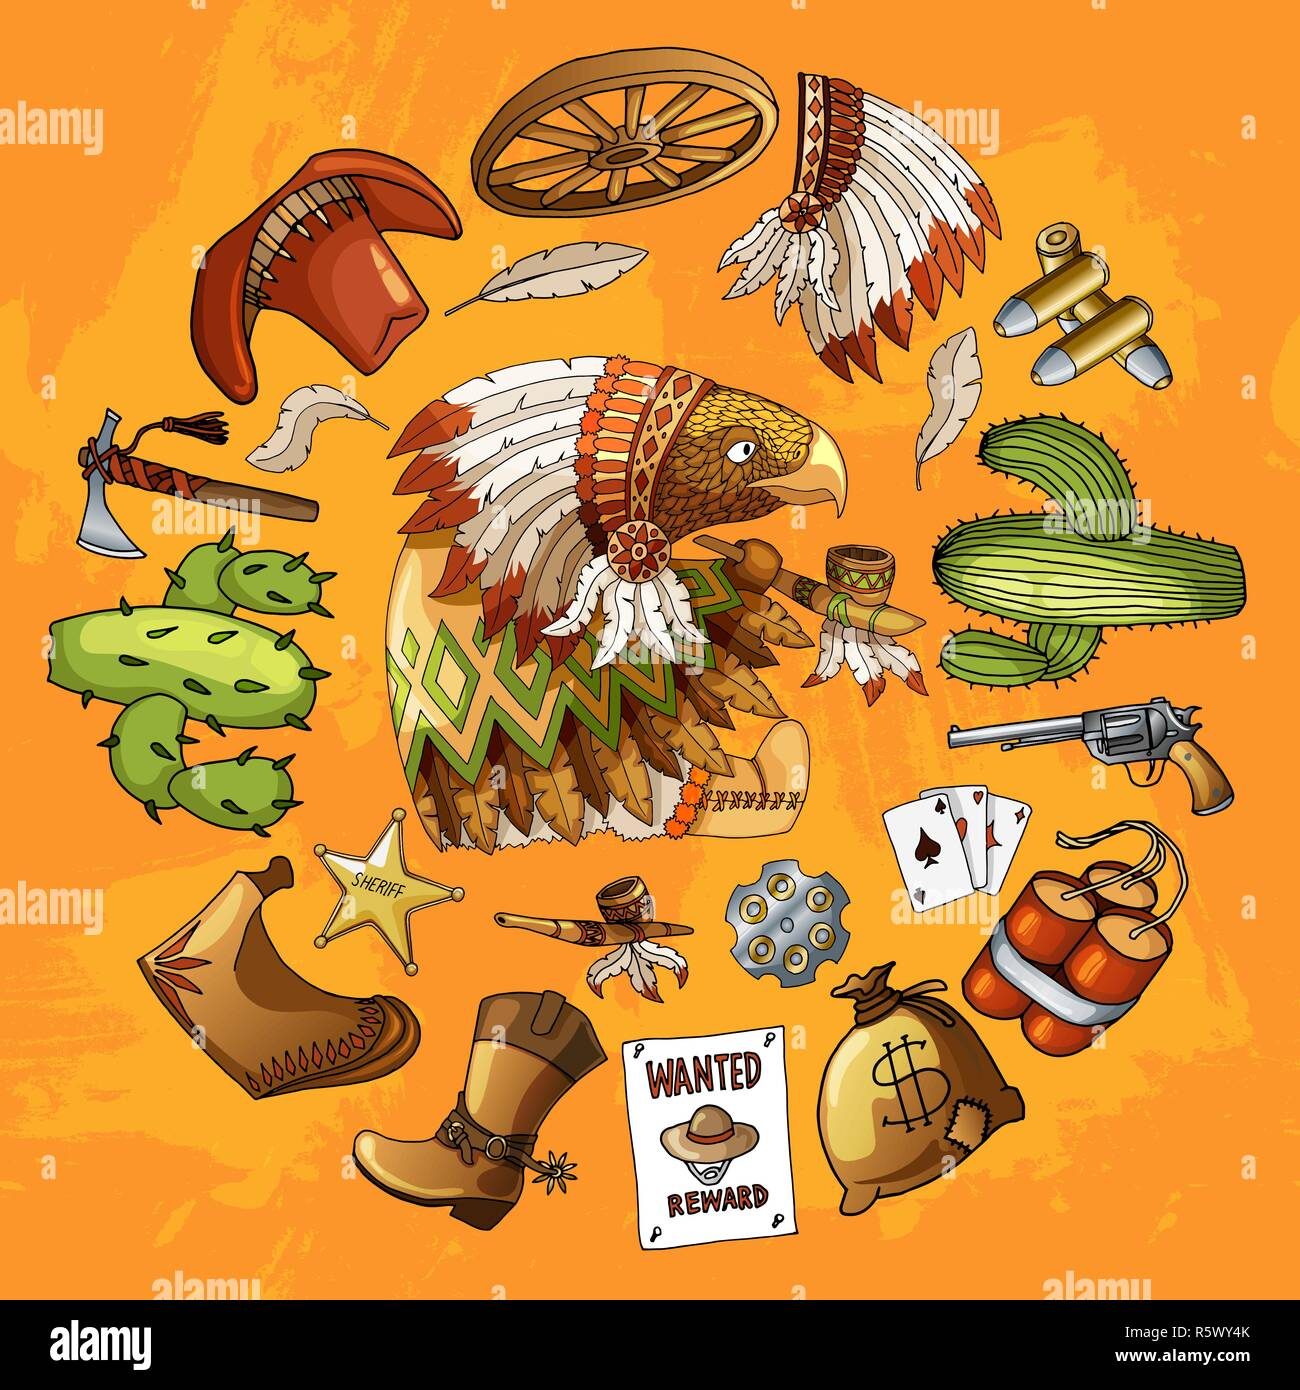 Cartoon character american eagle set of classic western items round design print - Stock Image